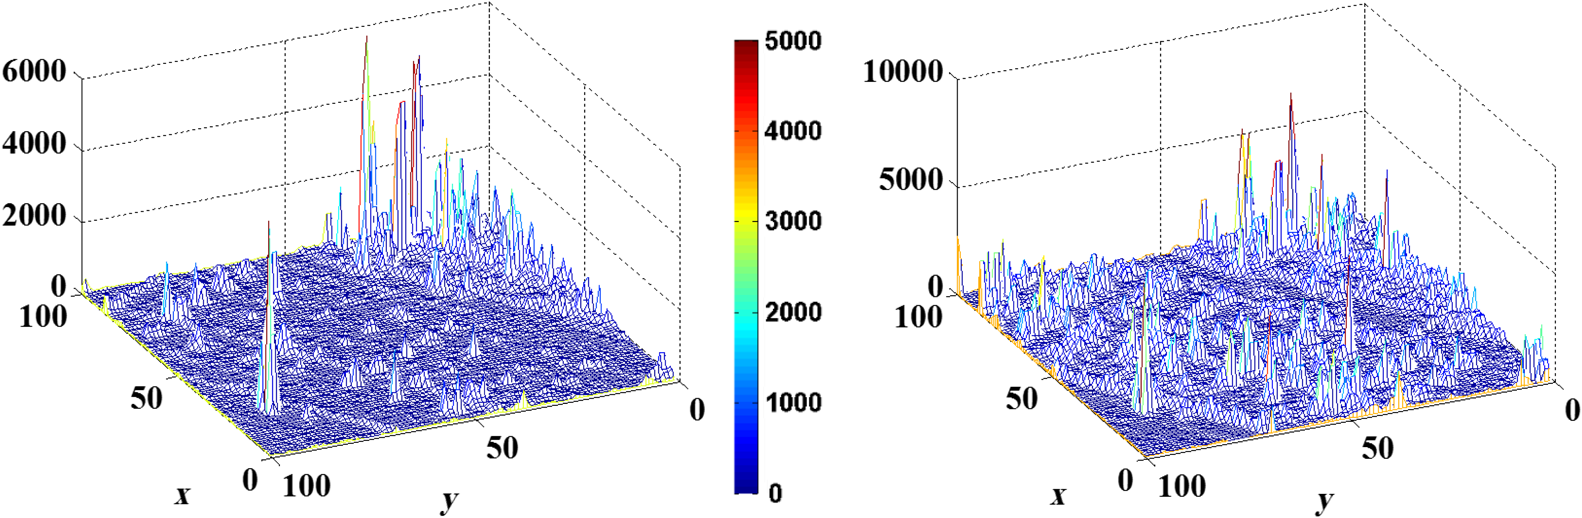 Hyperspectral anomaly detection based on stacked denoising